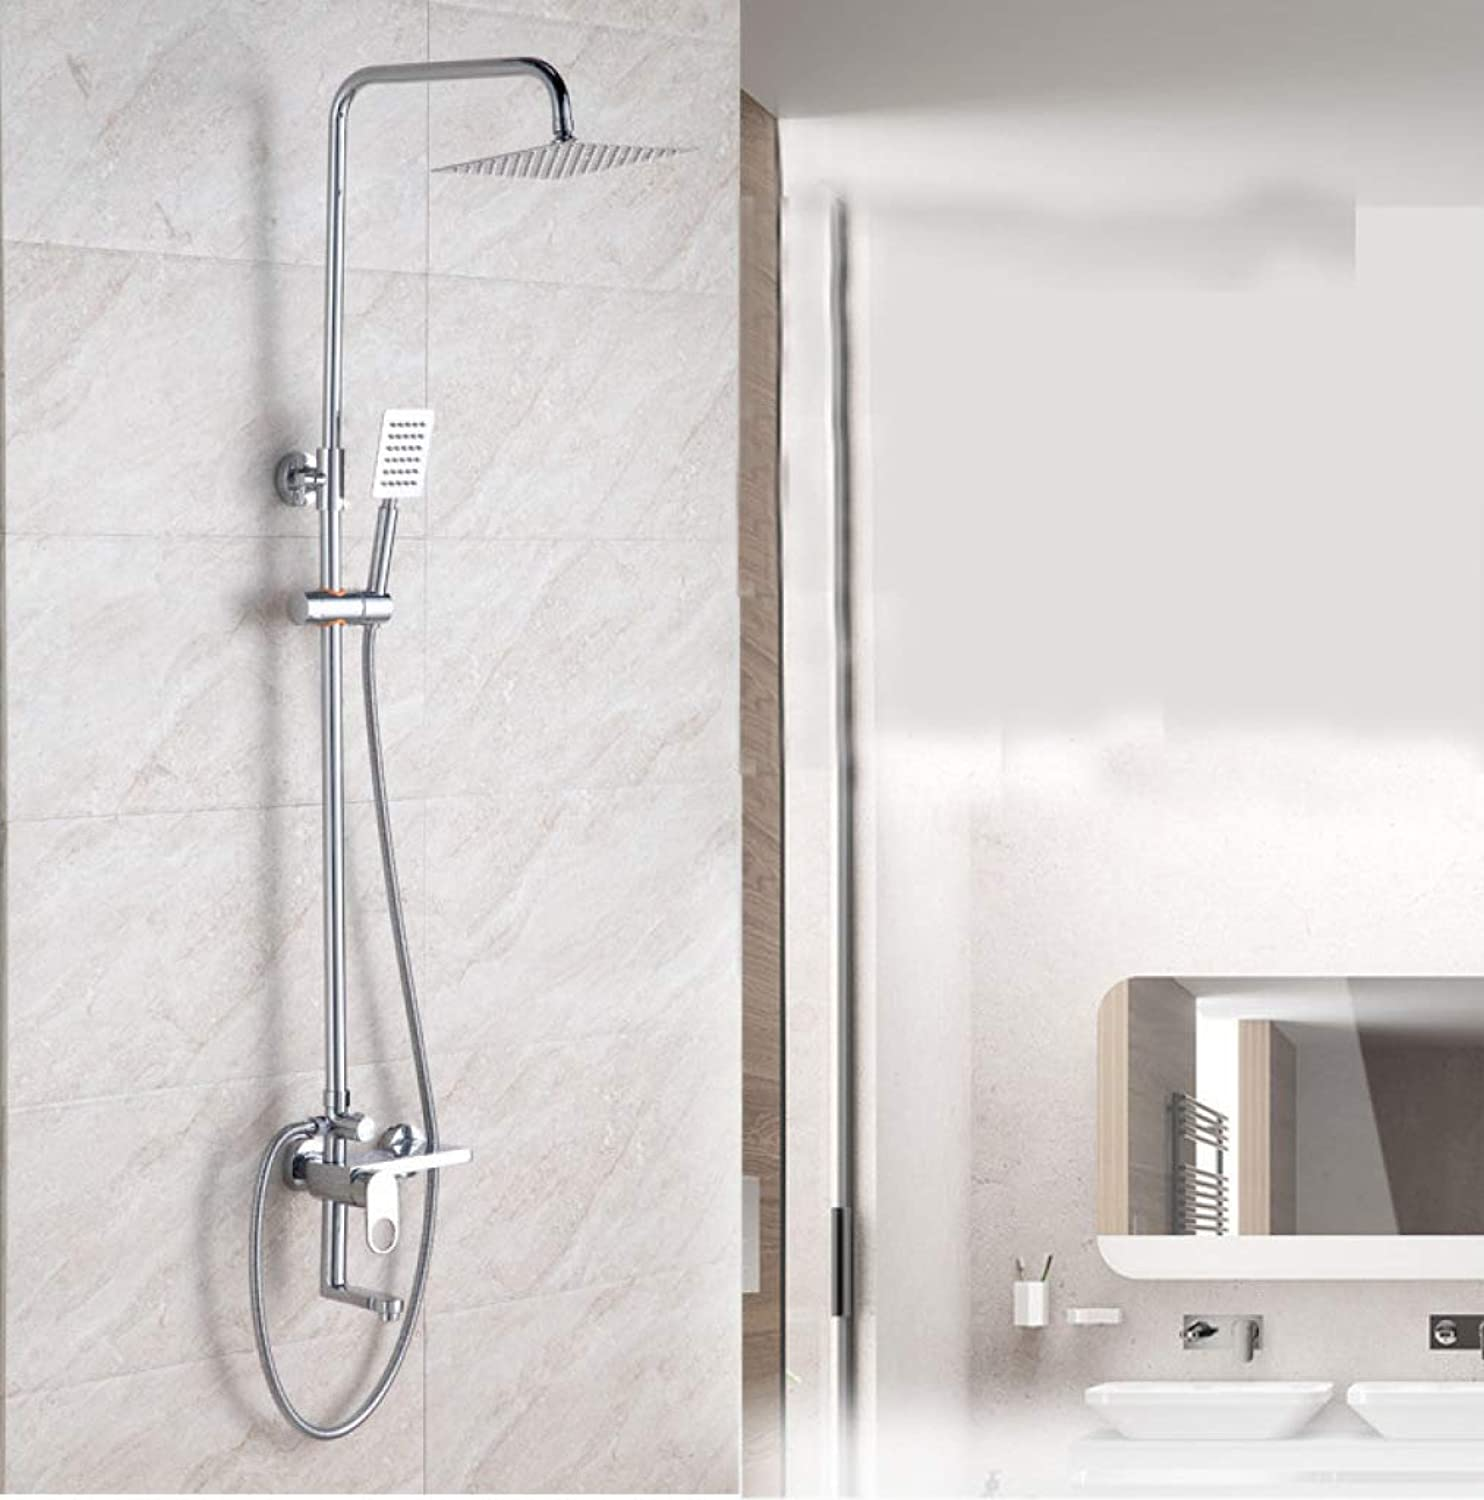 LHW Shower Set, faucet, square shower, round brass, concealed shower, stainless steel overhead shower, with overflow shower head shower